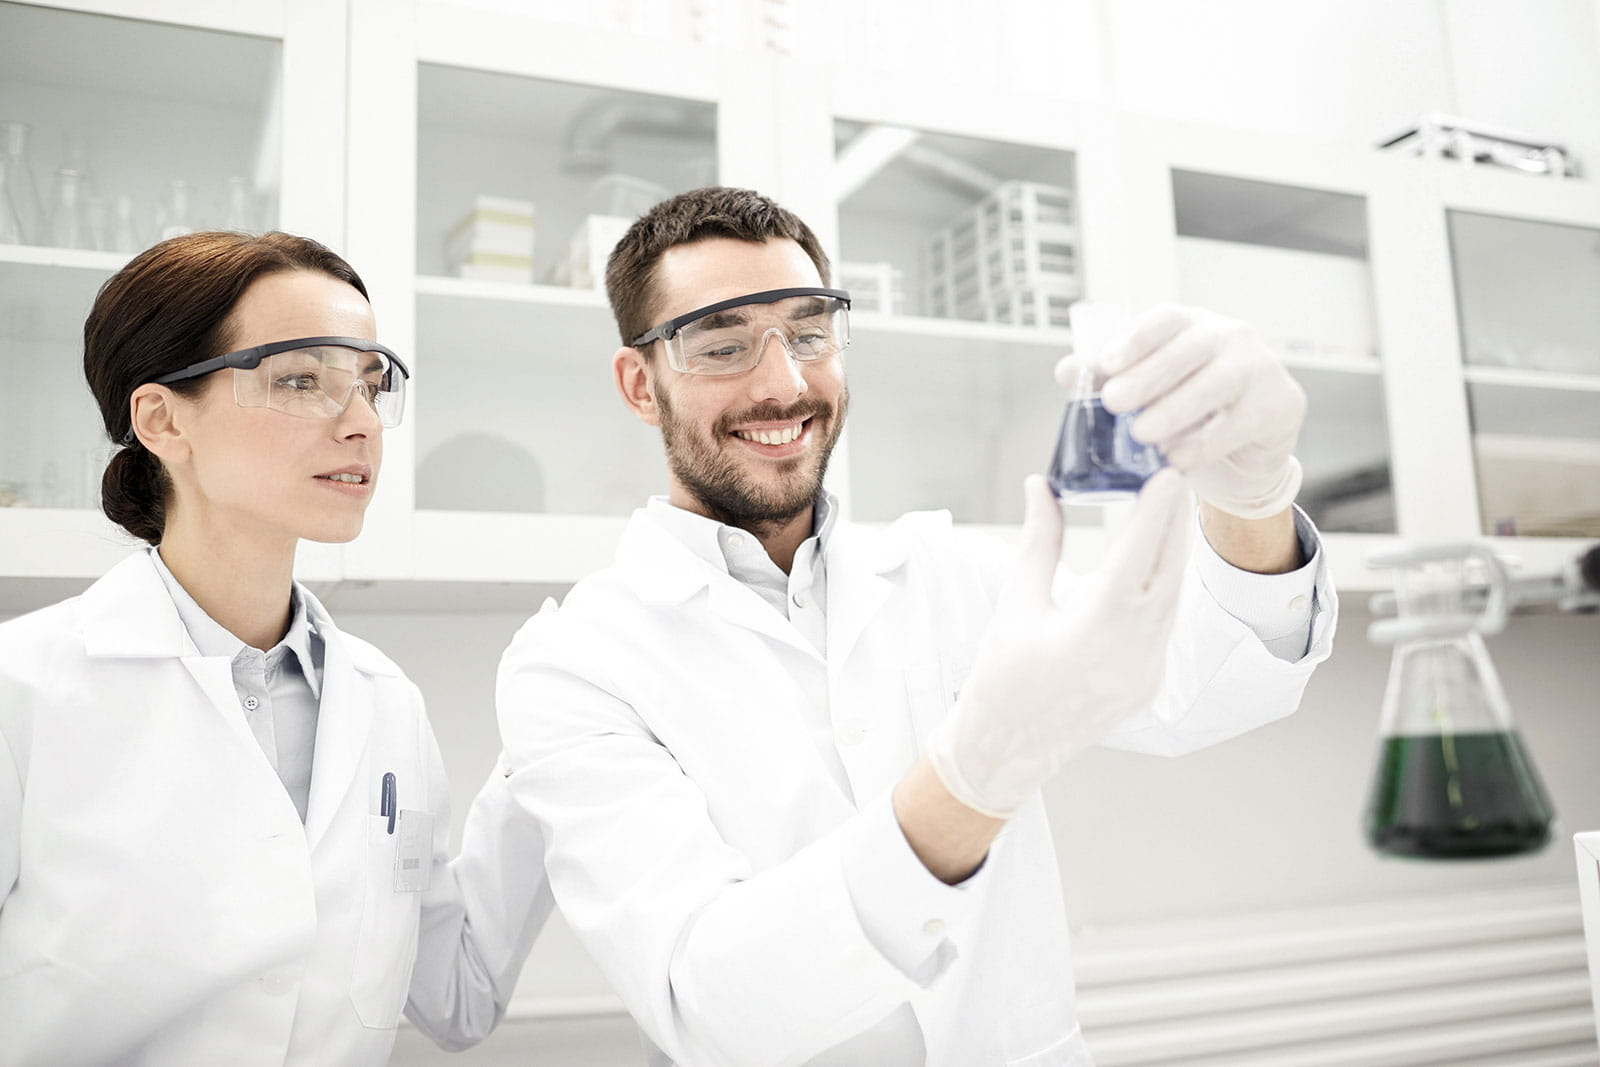 Female and male researchers in a lab holding beaker